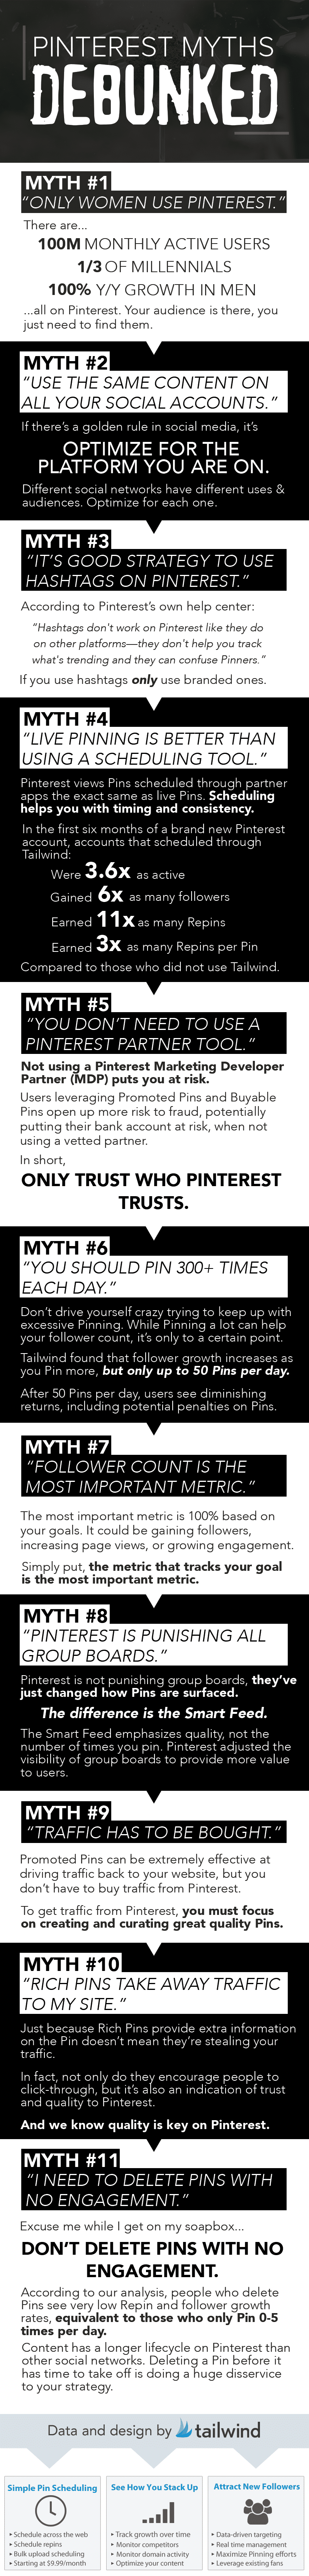 11 Persistent Pinterest Myths Debunked [Infographic]